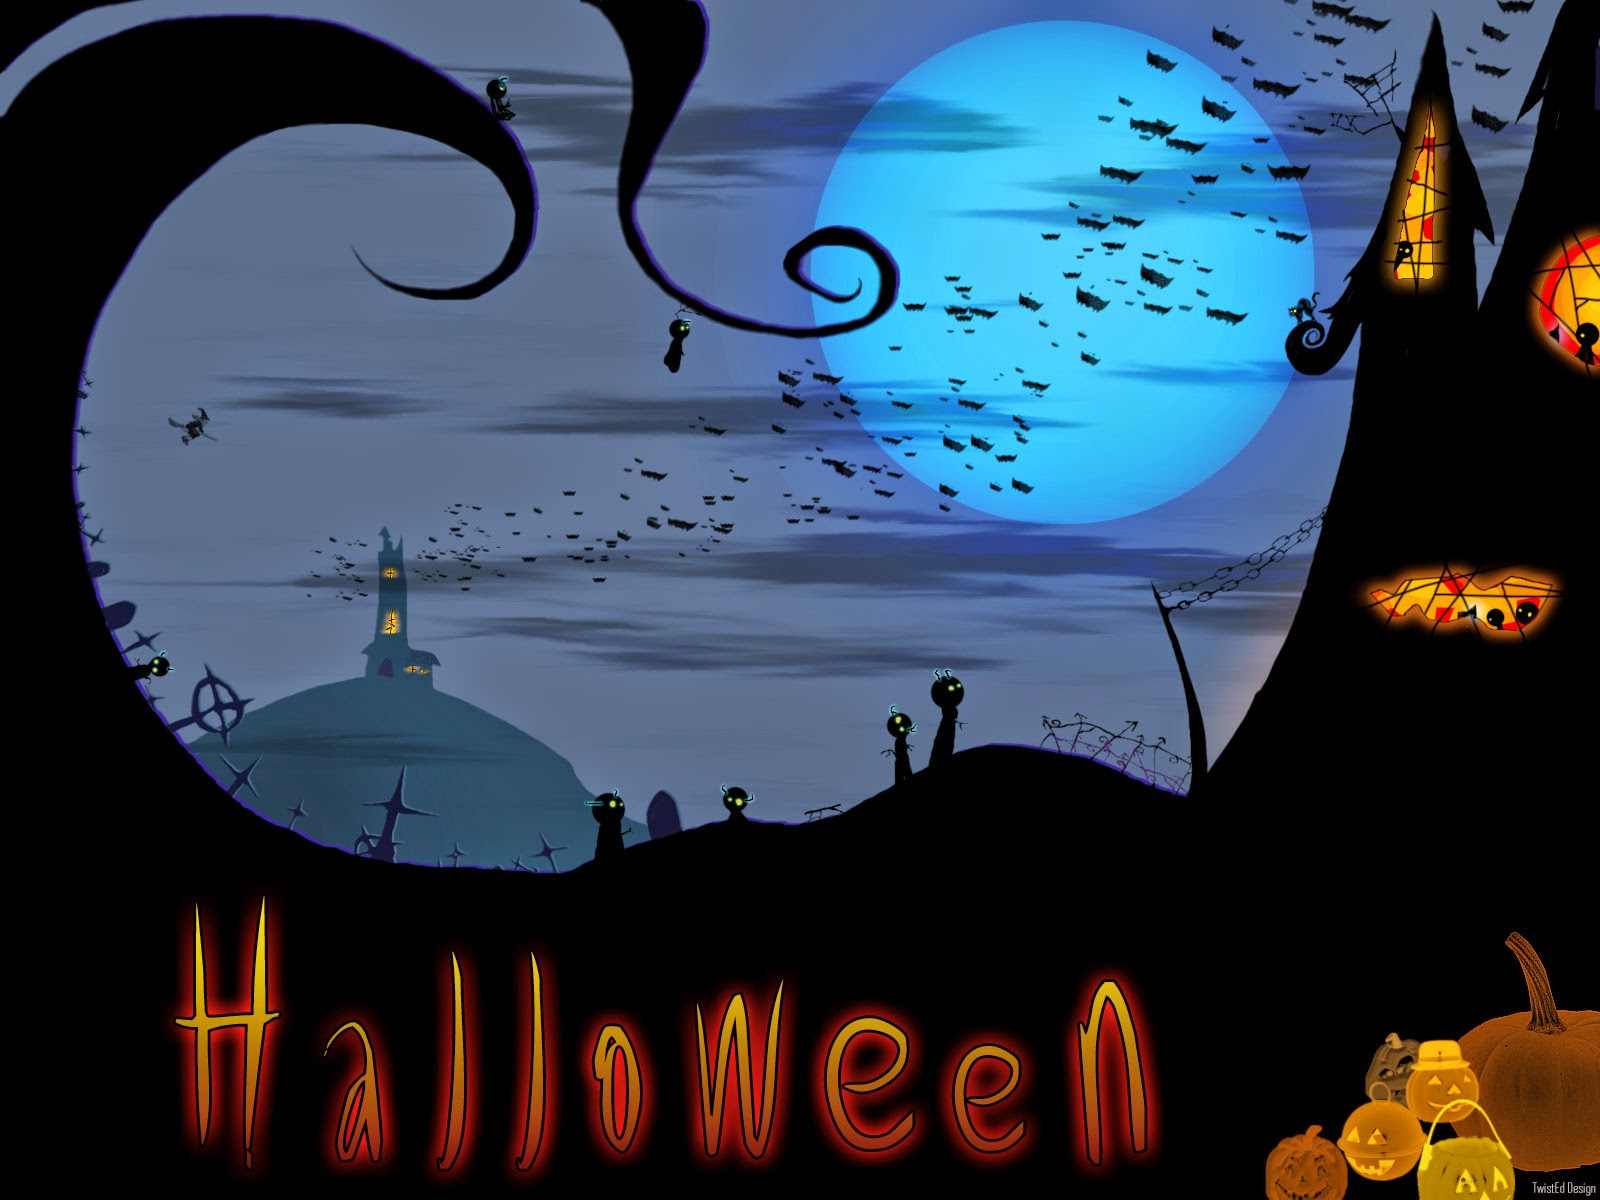 Halloween-text-dark-night-blue-theme-HD-wallpaper-image.jpg